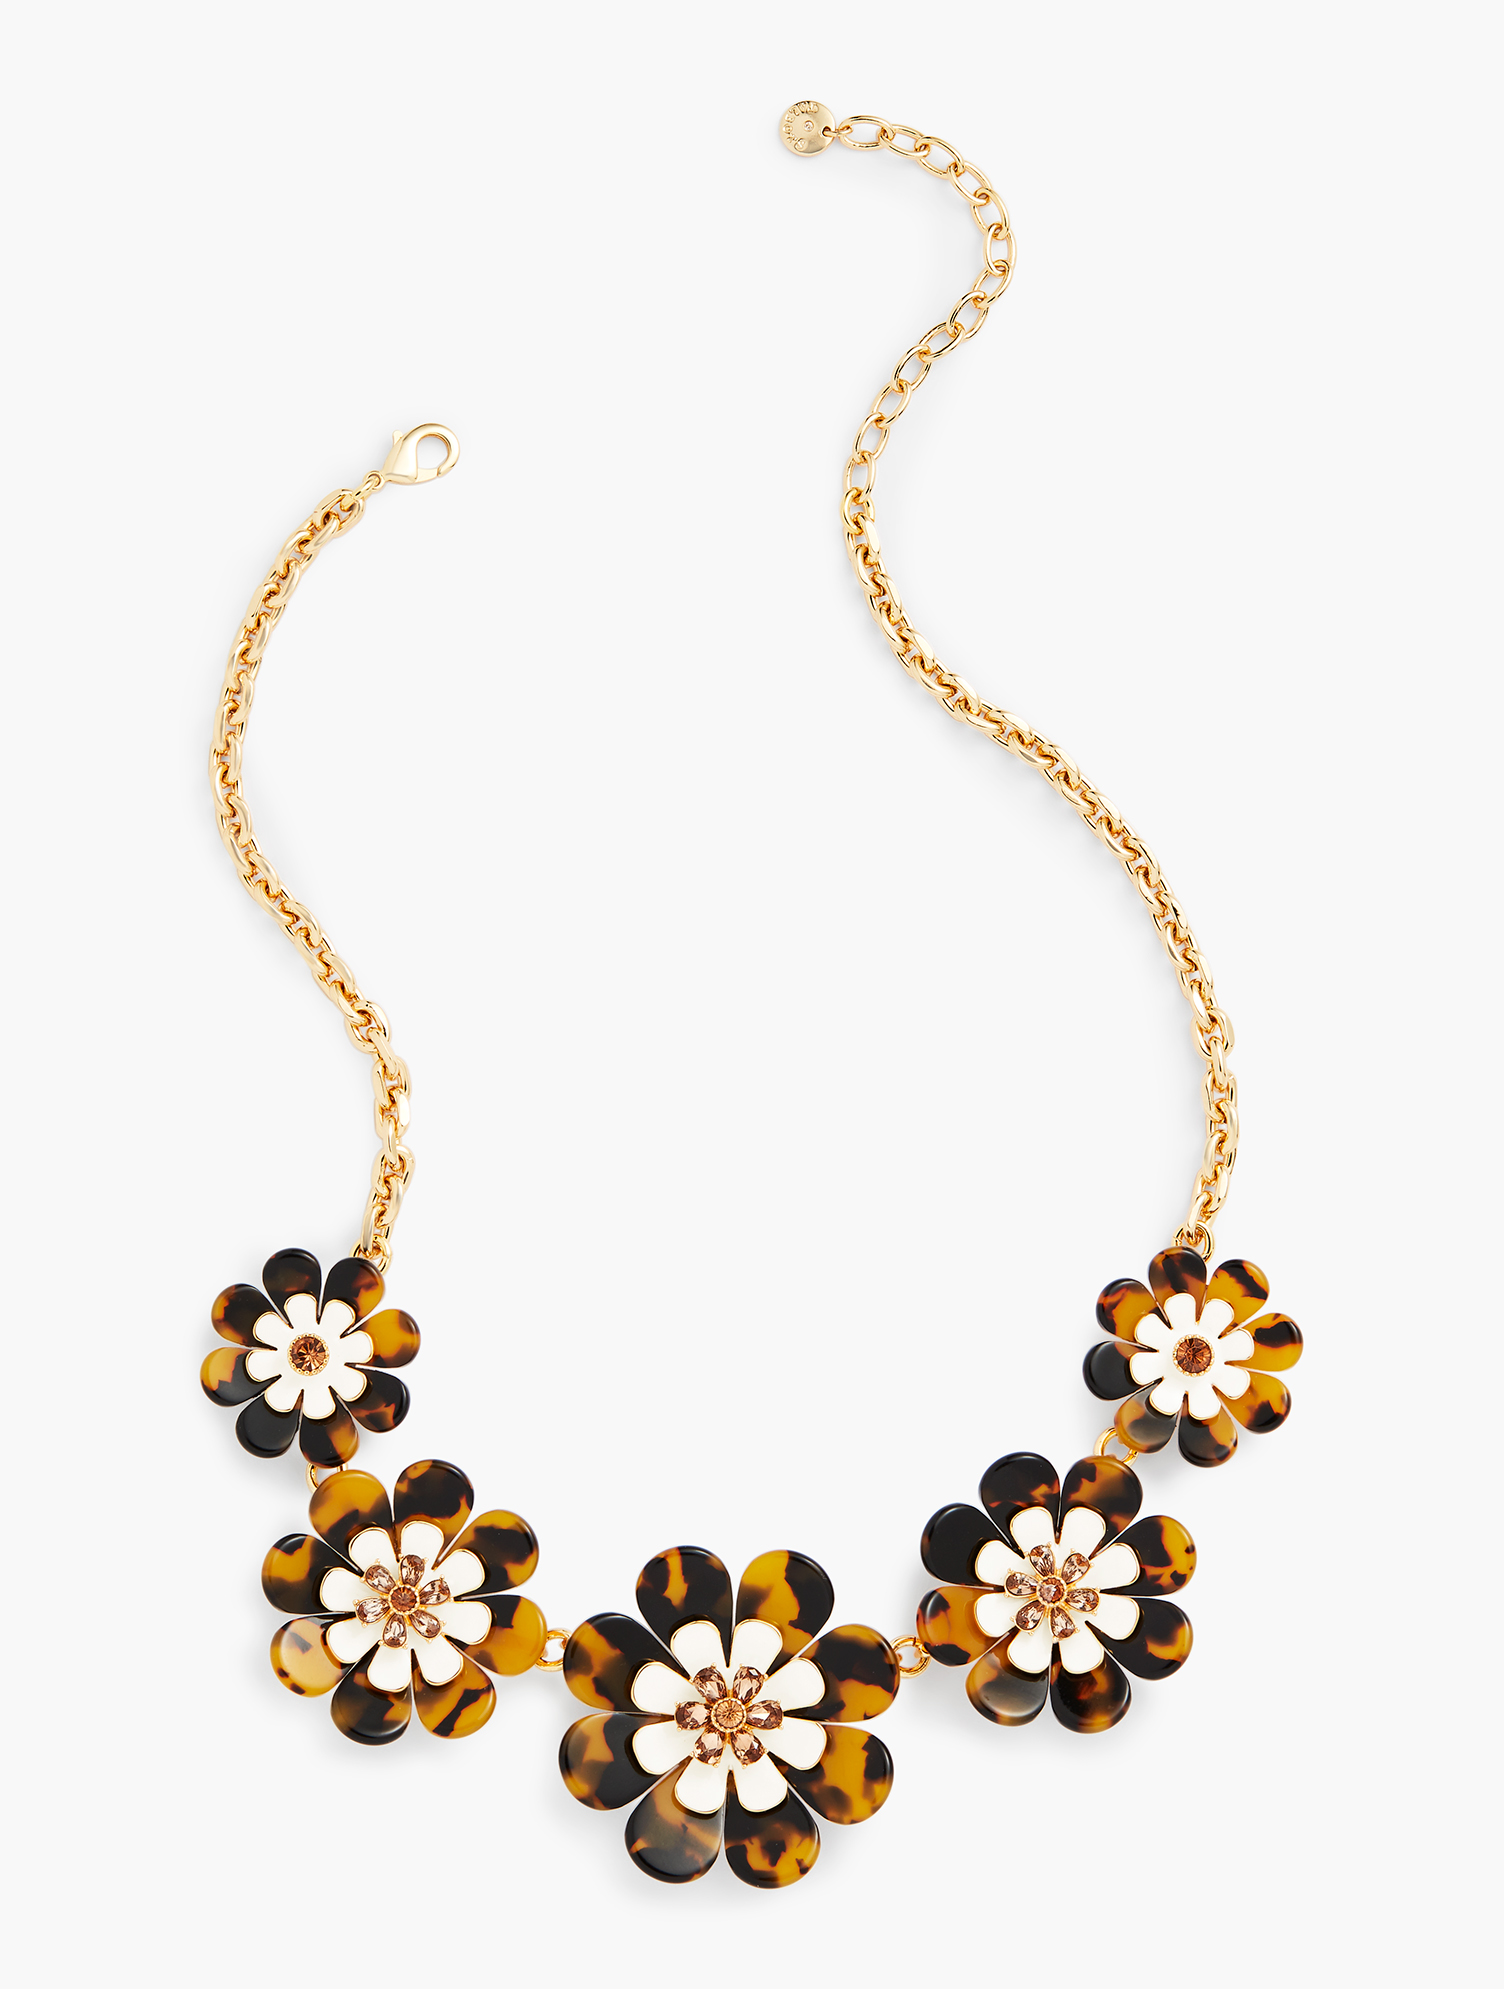 60s -70s Jewelry – Necklaces, Earrings, Rings, Bracelets Layered Tortoise Flower Necklace - TORTOISEIVORYGOLD - OS - Talbots $47.70 AT vintagedancer.com